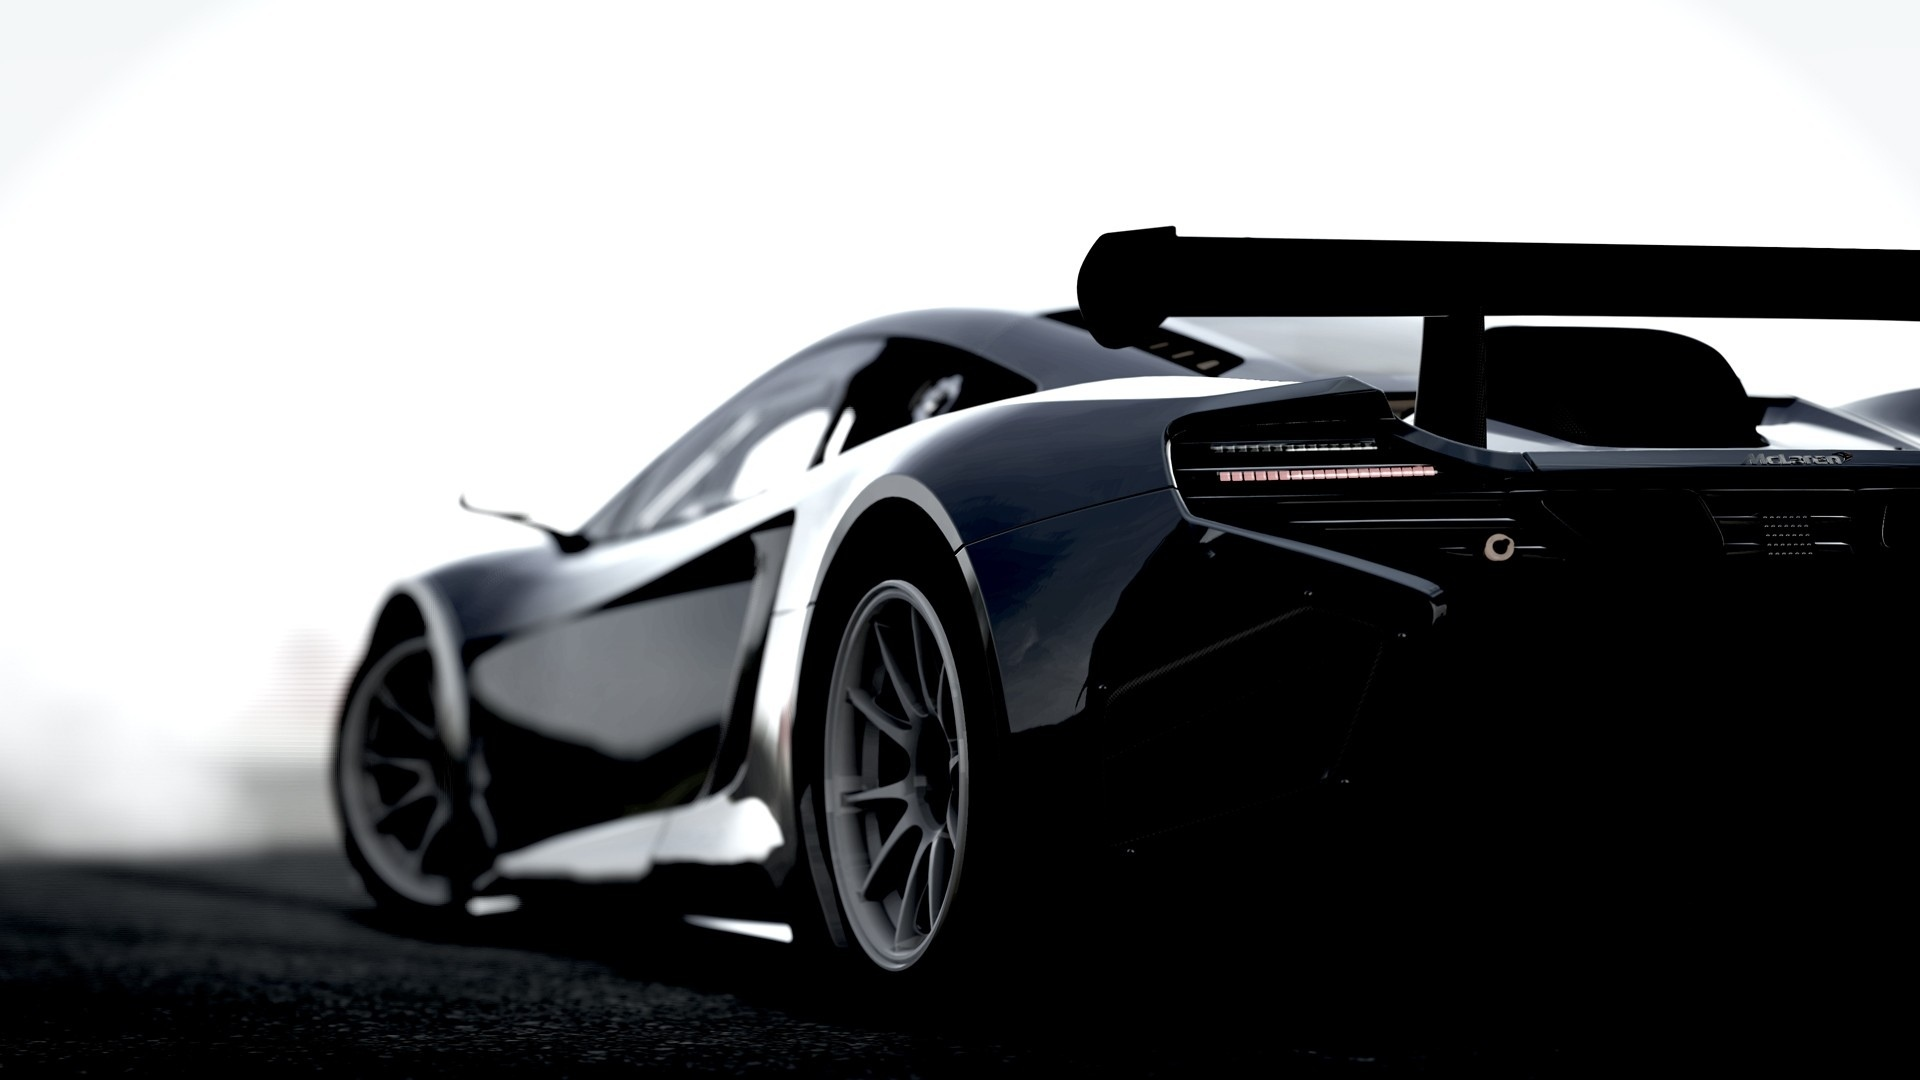 Forza Motorsports supercars vehicles cars tuning wallpaper background 1920x1080